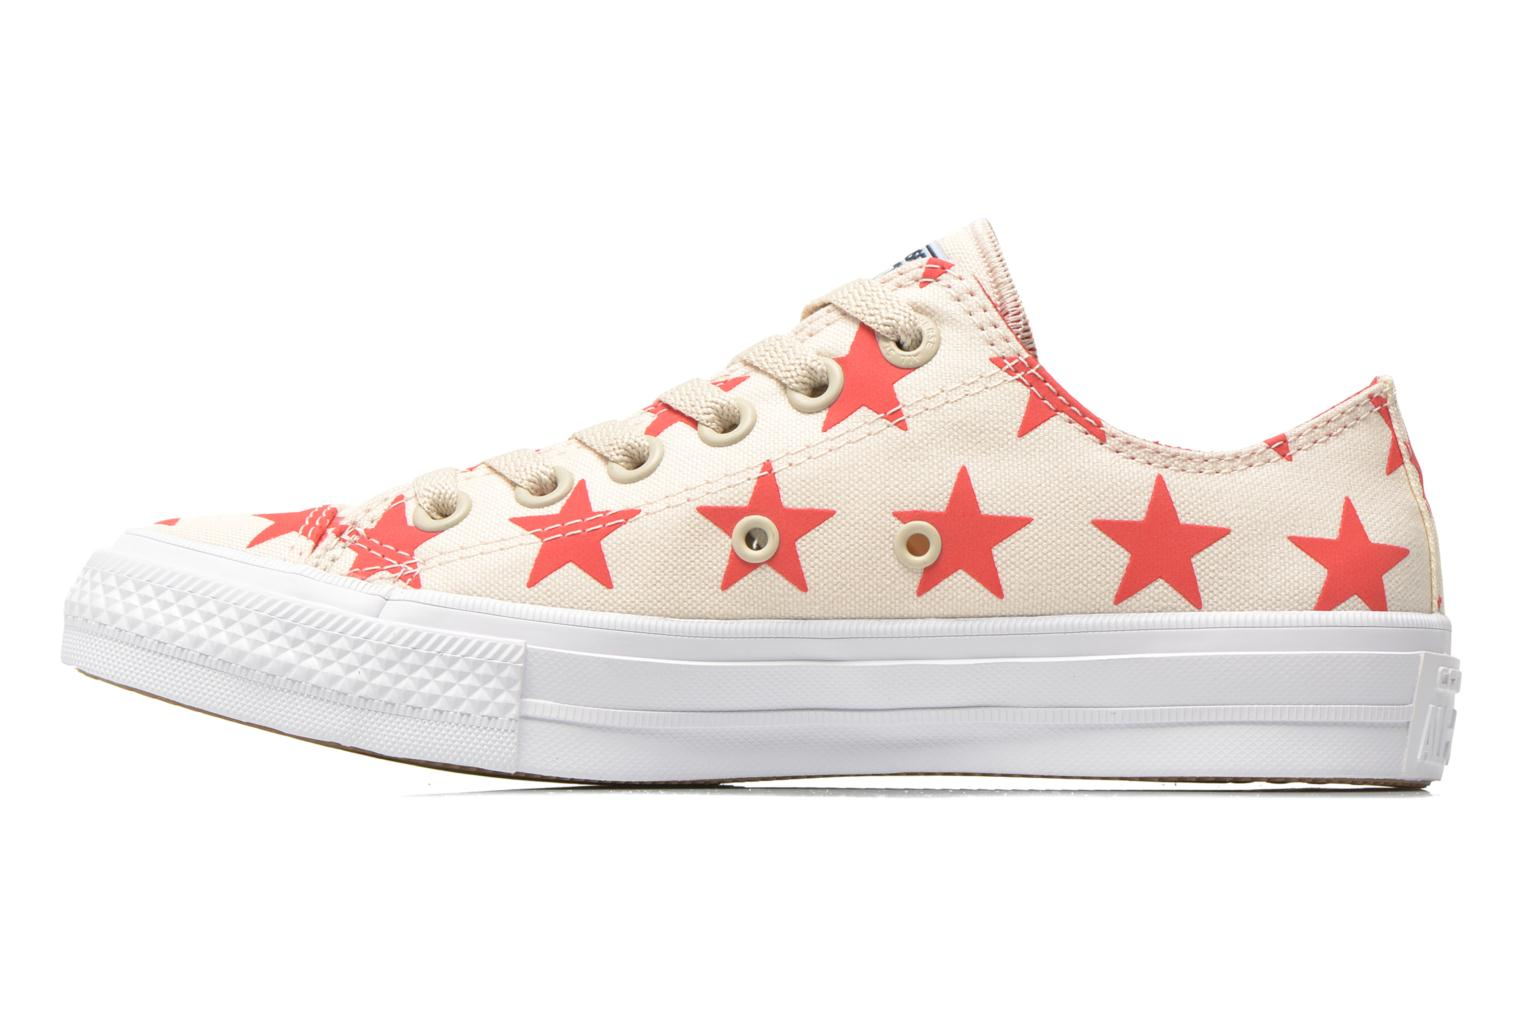 Chuck Taylor All Star II Ox W Parchment-Navy-White